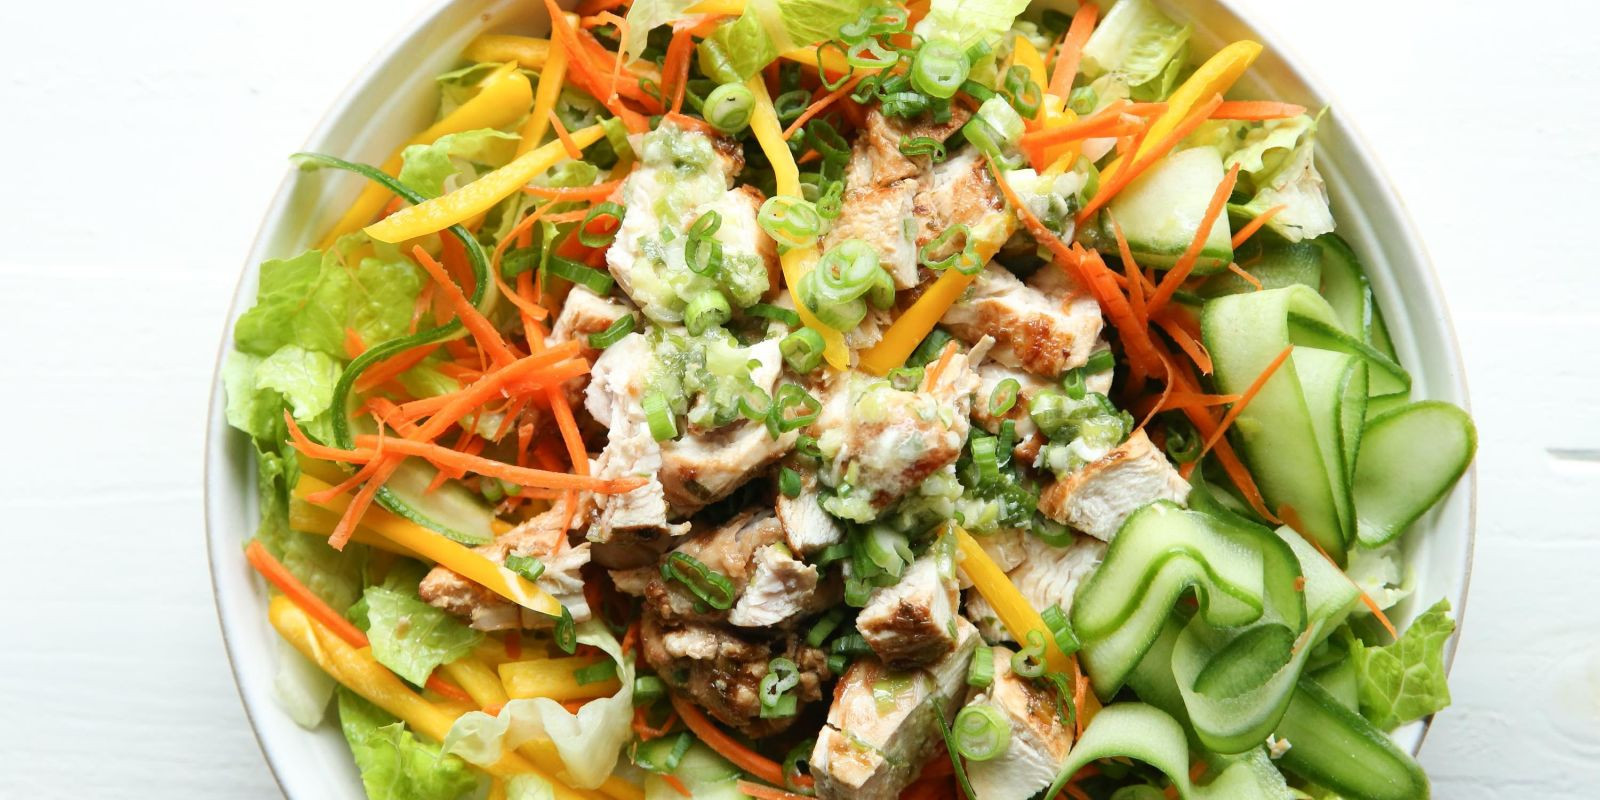 How To Make Chicken Salad  Best Asian Chicken Salad Recipe—How To Make Asian Chicken